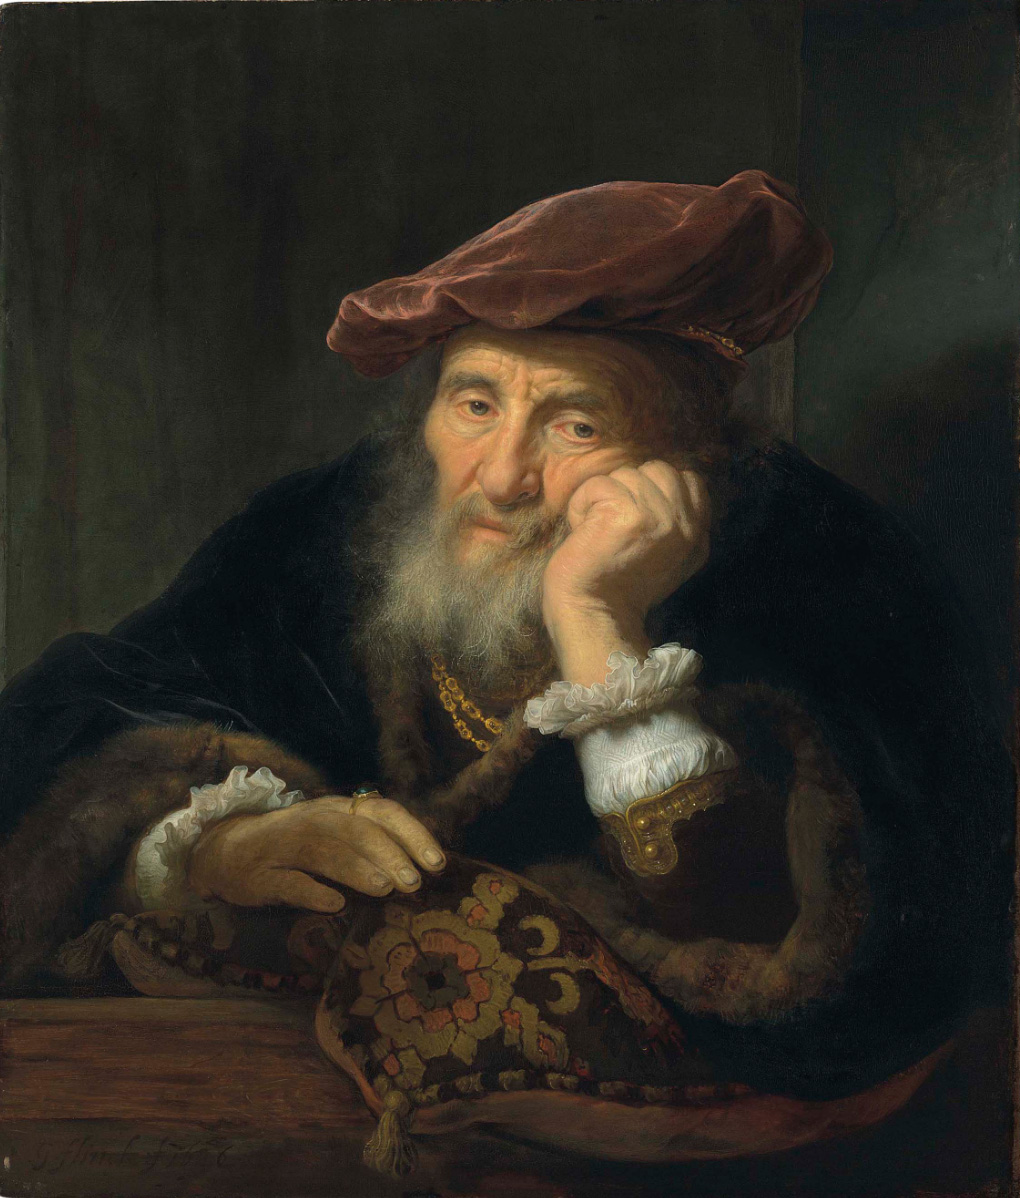 An old man at a casement av den holländska konstnären Govaert Flinck (1615-1660). Bild Christie's